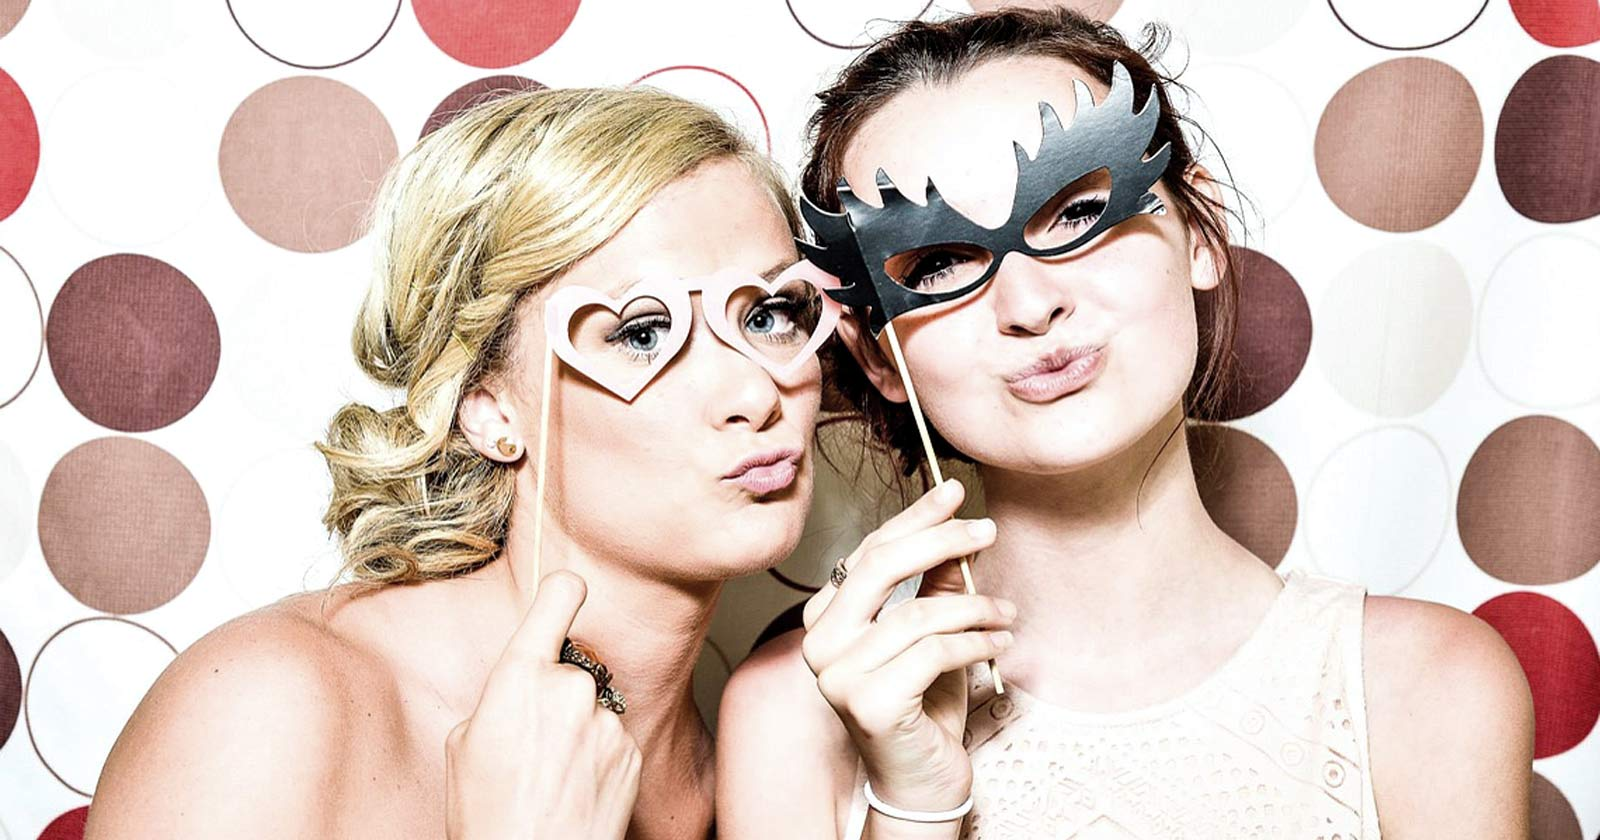 Event Photo Booth Ideas & A Social Wall to Spice Up Your Event